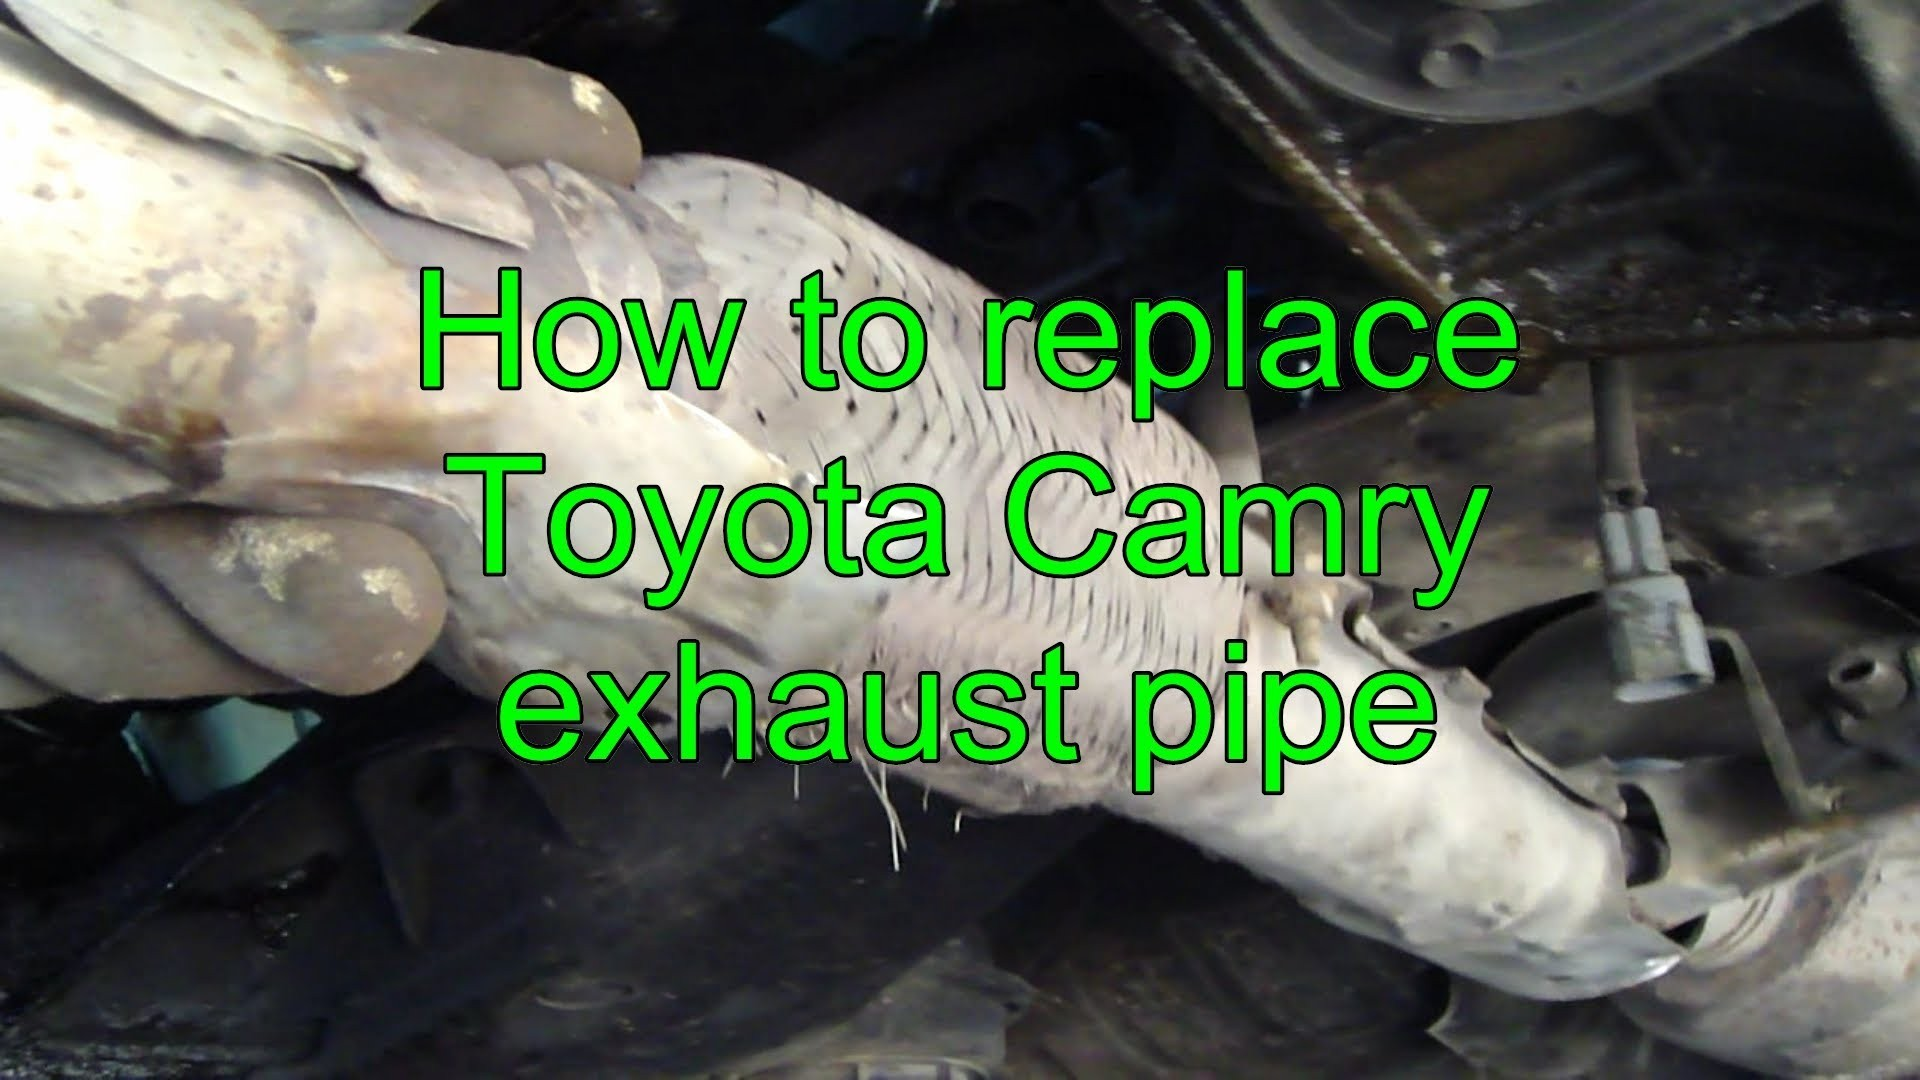 hight resolution of 2004 toyota camry engine diagram how to replace toyota camry exhaust pipe years 1992 to 2002